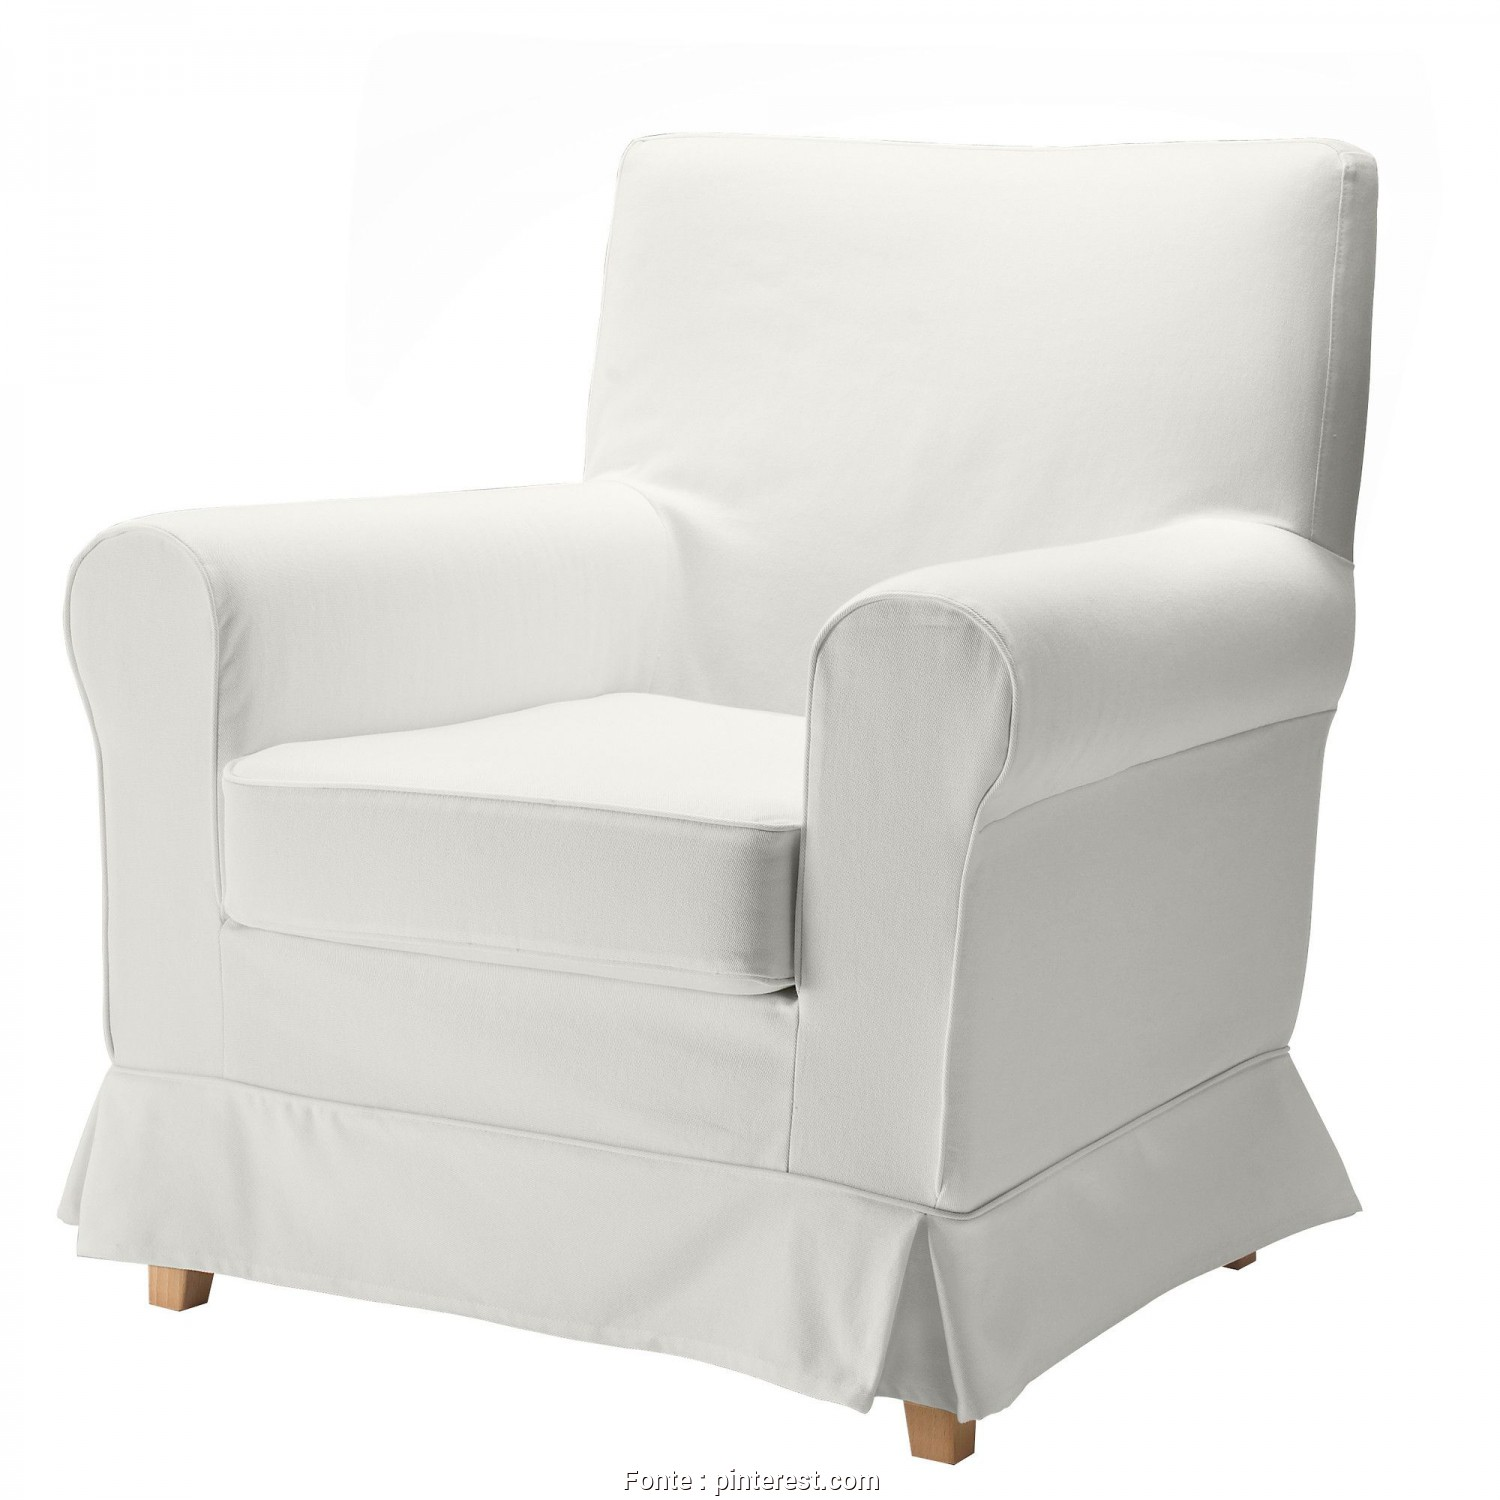 Costo Fodera Divano Ektorp Ikea, Eccezionale EKTORP JENNYLUND Chair, Blekinge White, IKEA $200 If, End Up Needing A Chair...My, Has 2 Of These In, Breakfast Area, They, Comfortable And